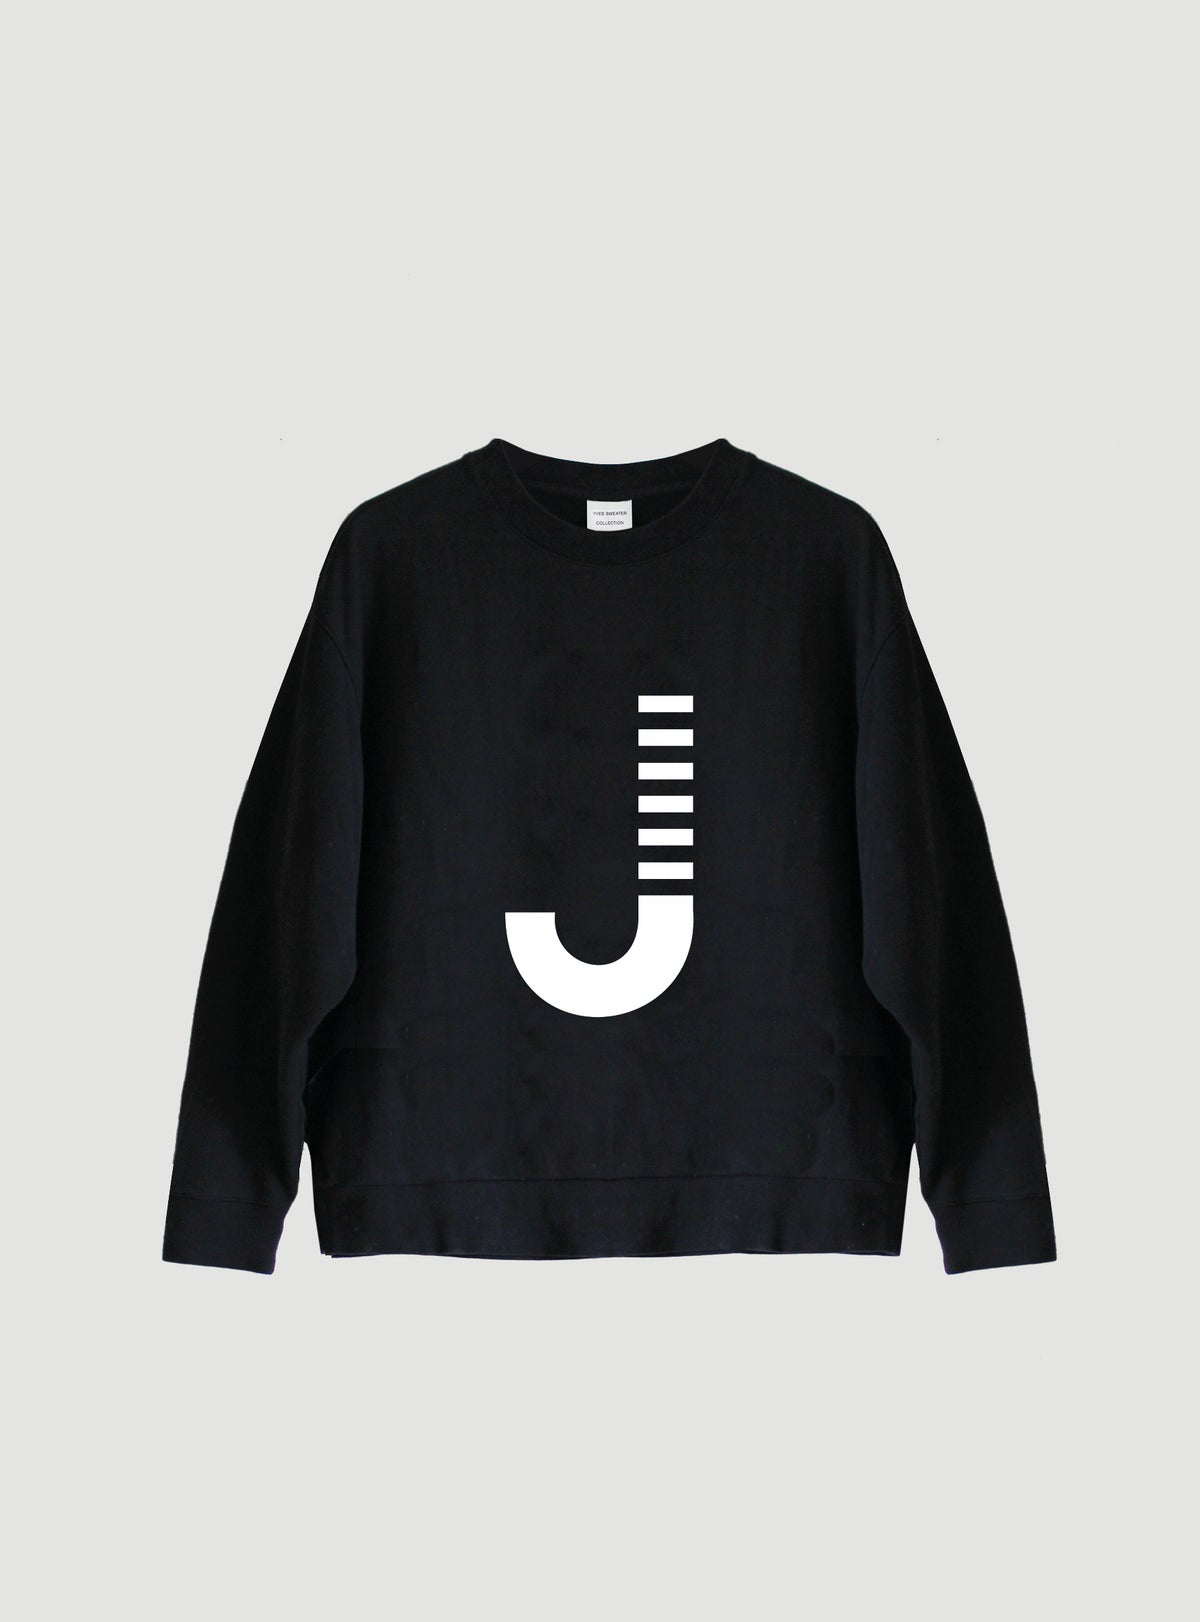 Image of J Sweater